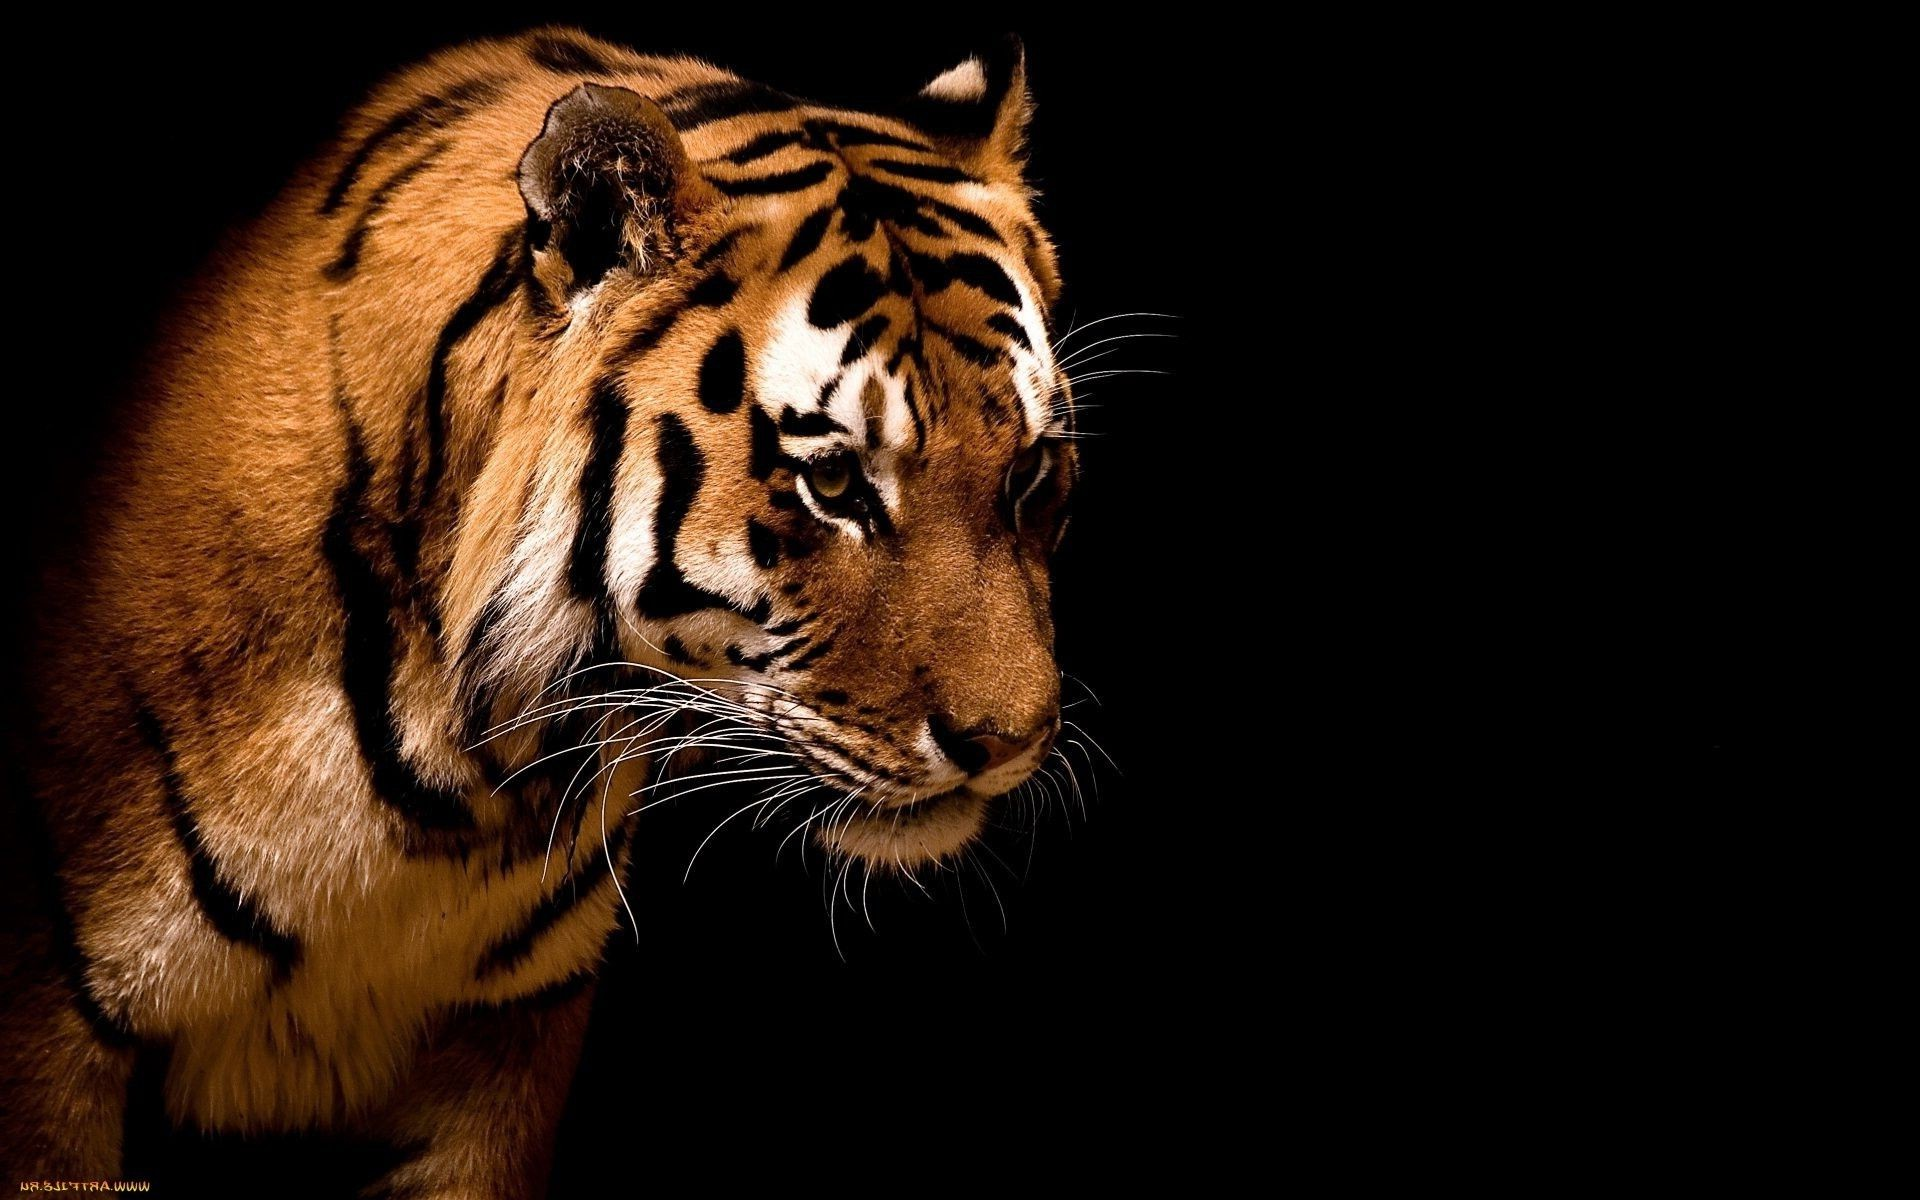 Tiger Wallpaper Iphone Wallpapers For Free